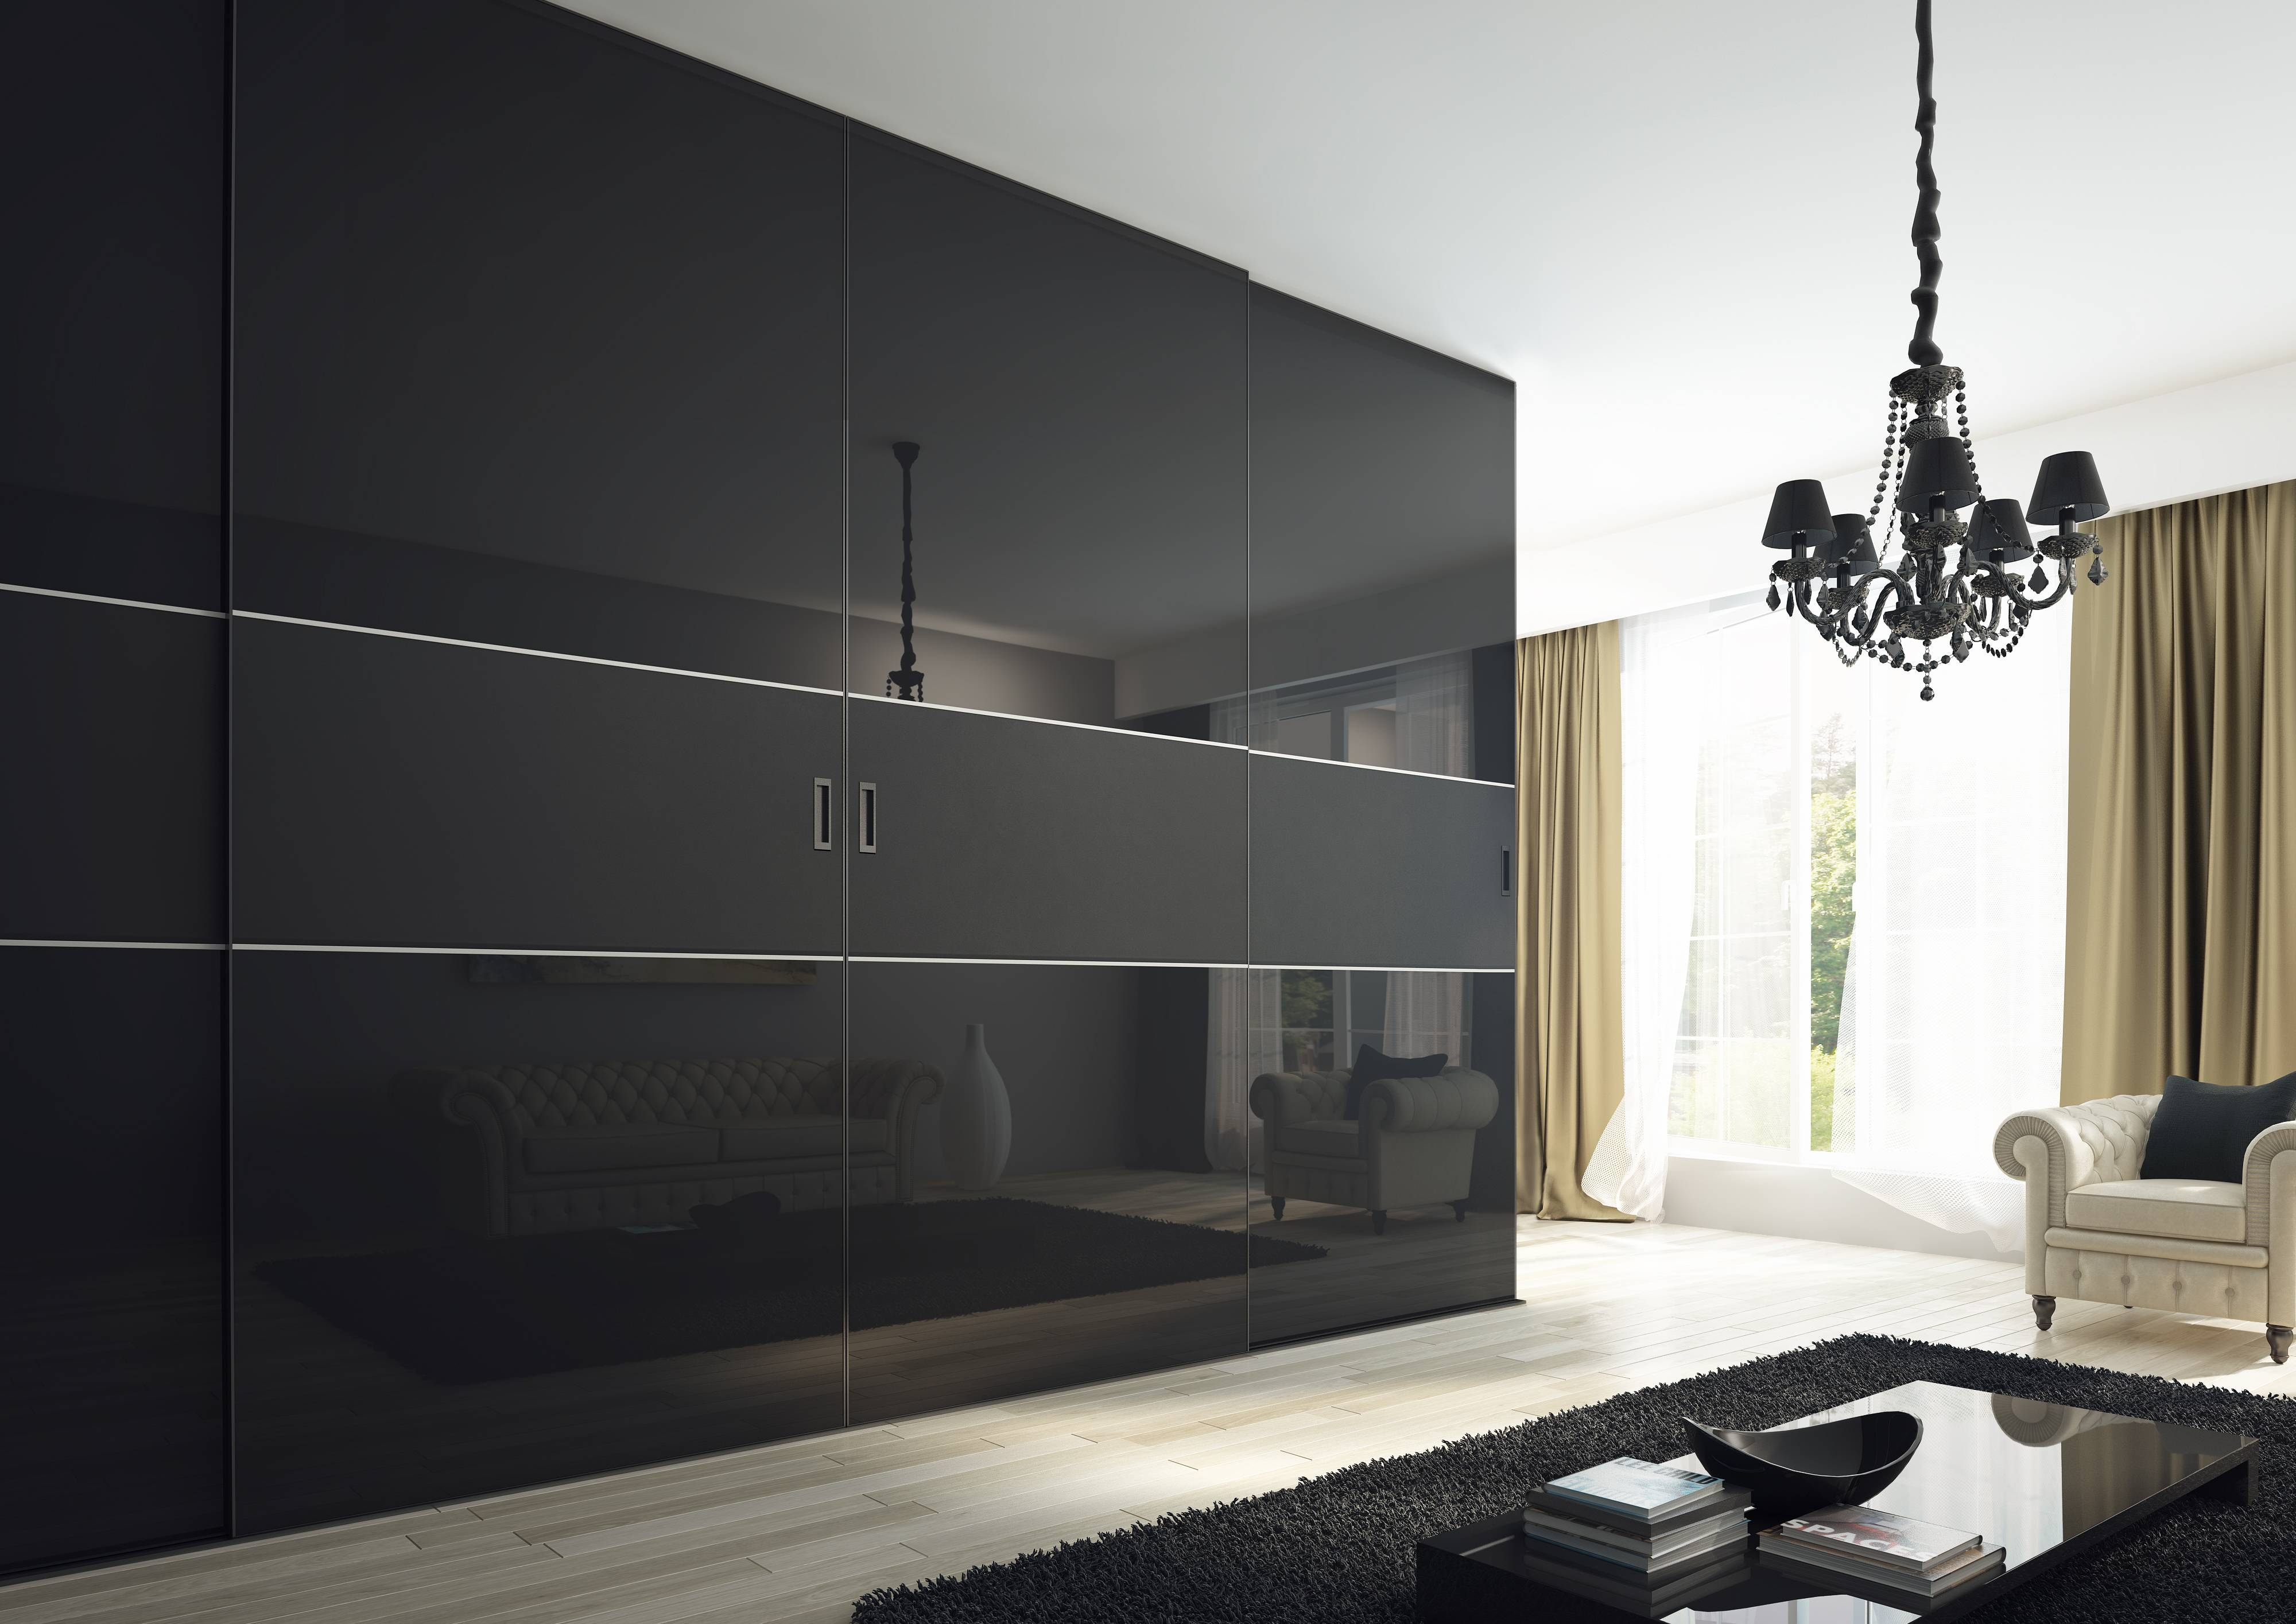 Kleiderhaus Sliding Doors And Fitted Wardrobes London within 3 Door Black Gloss Wardrobes (Image 12 of 15)